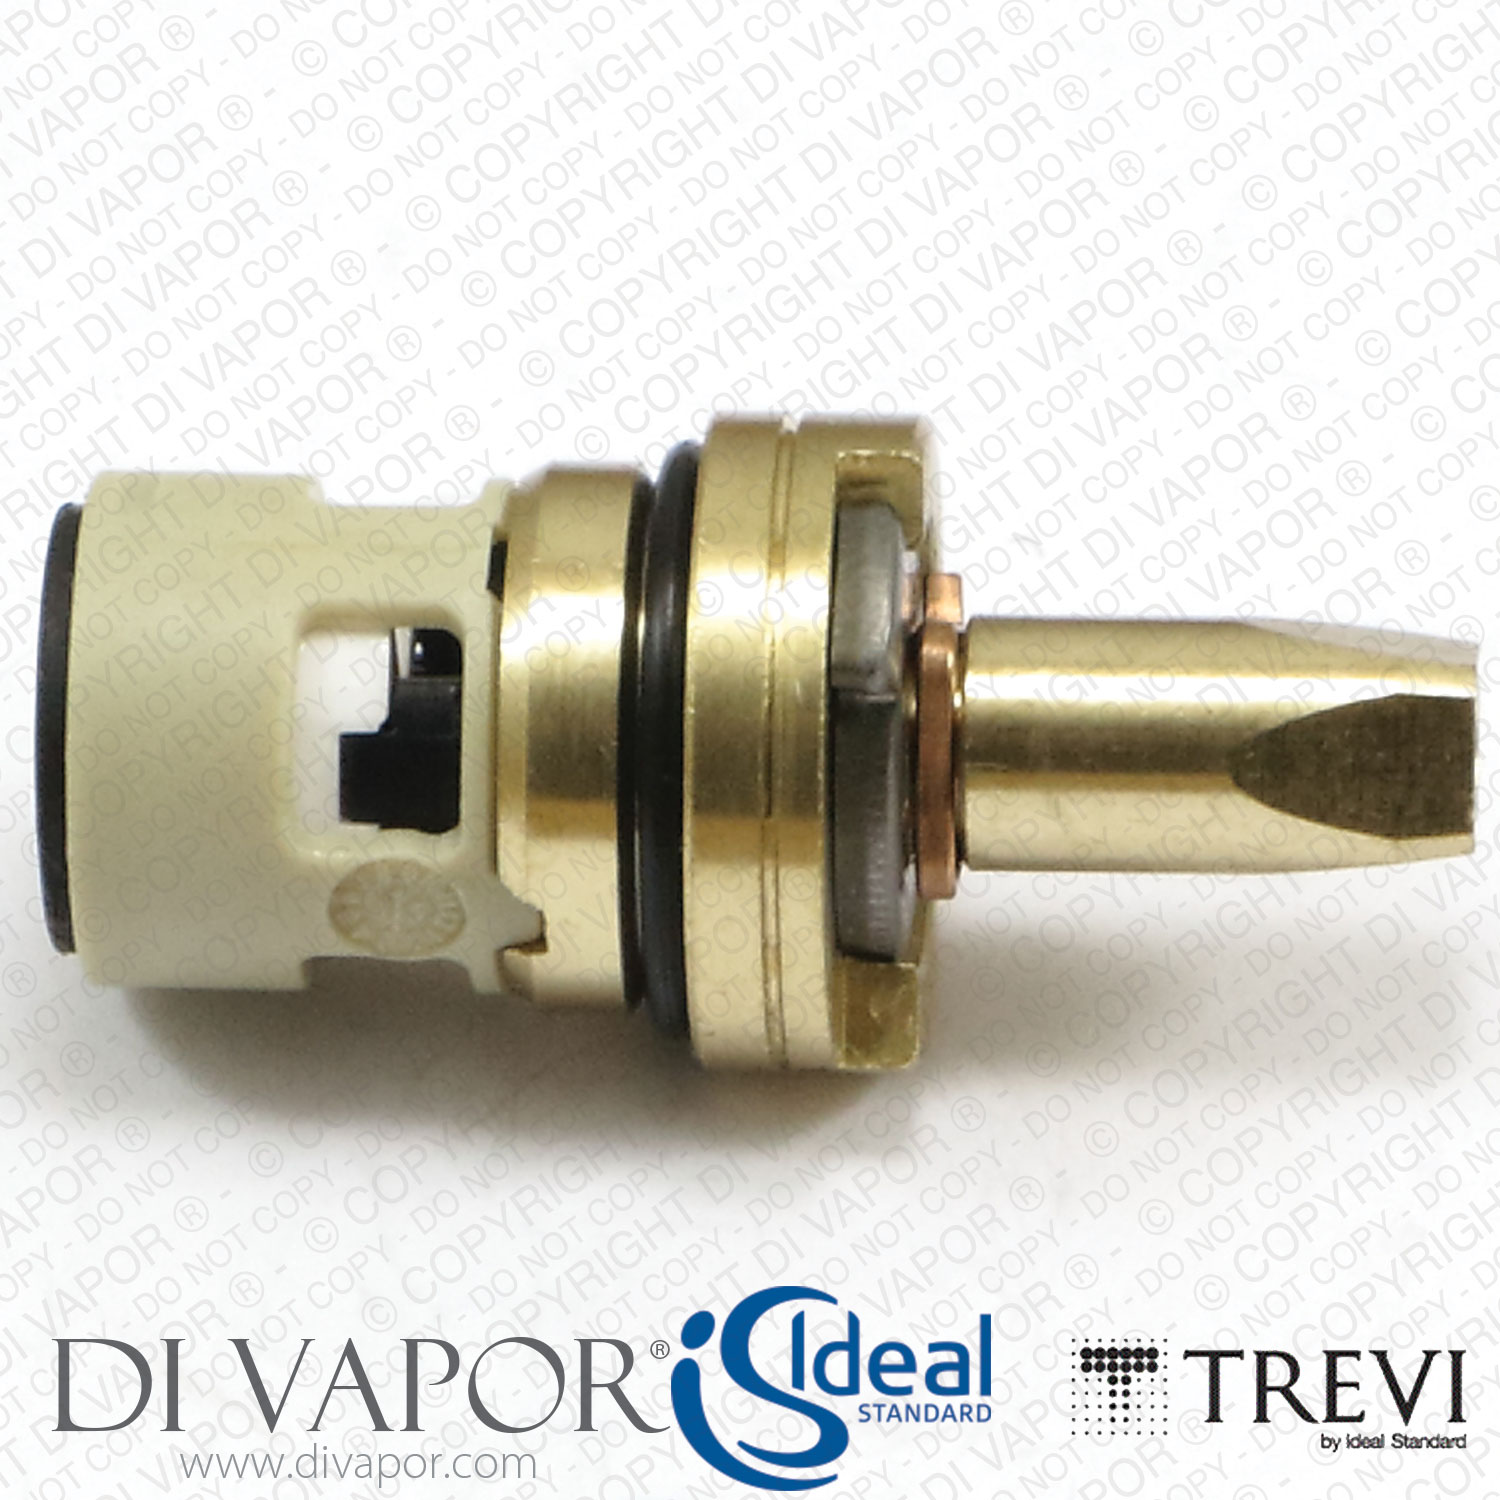 Trevi A6514895NU 1/2 Inch On/Off Flow Cartridge for Taps and Shower ...